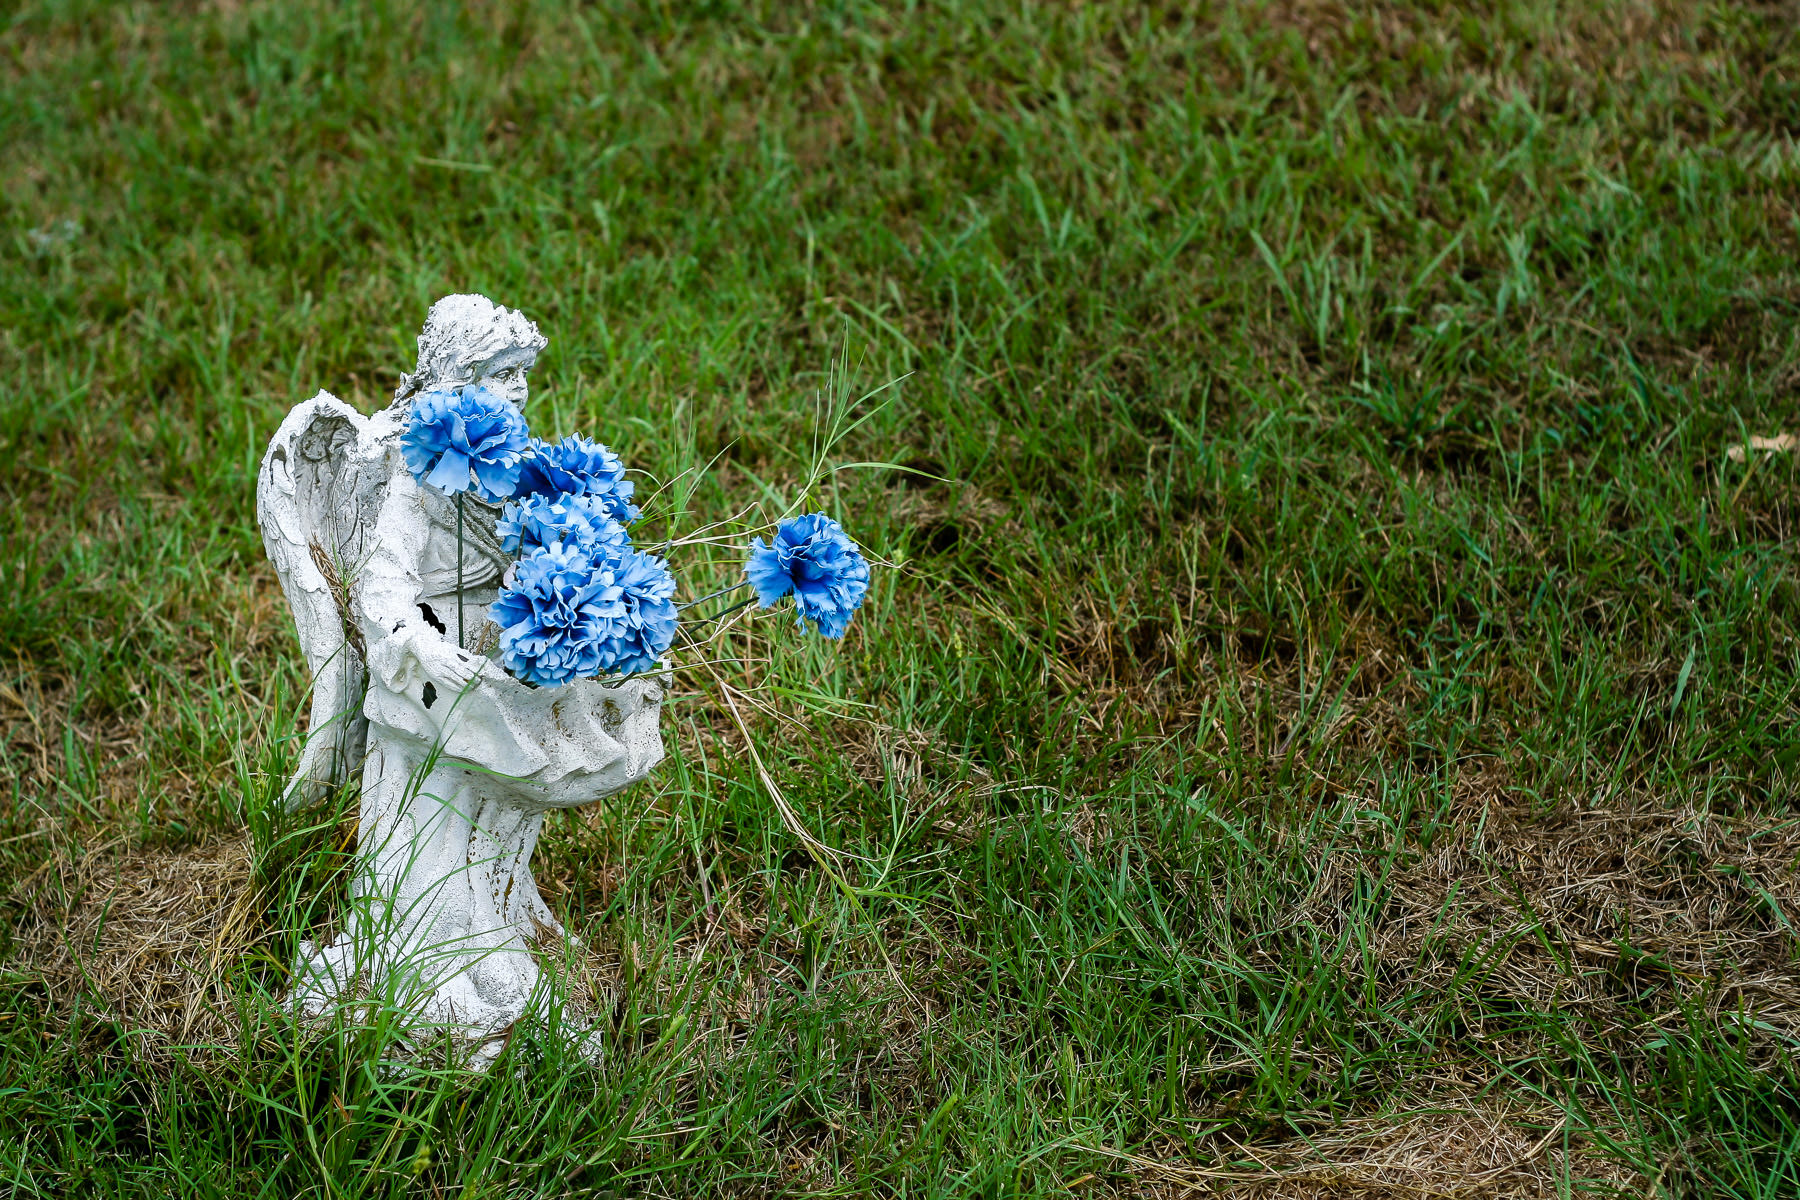 A small angel statue holds flowers at Minters Chapel Cemetery on the property of DFW International Airport, Texas.